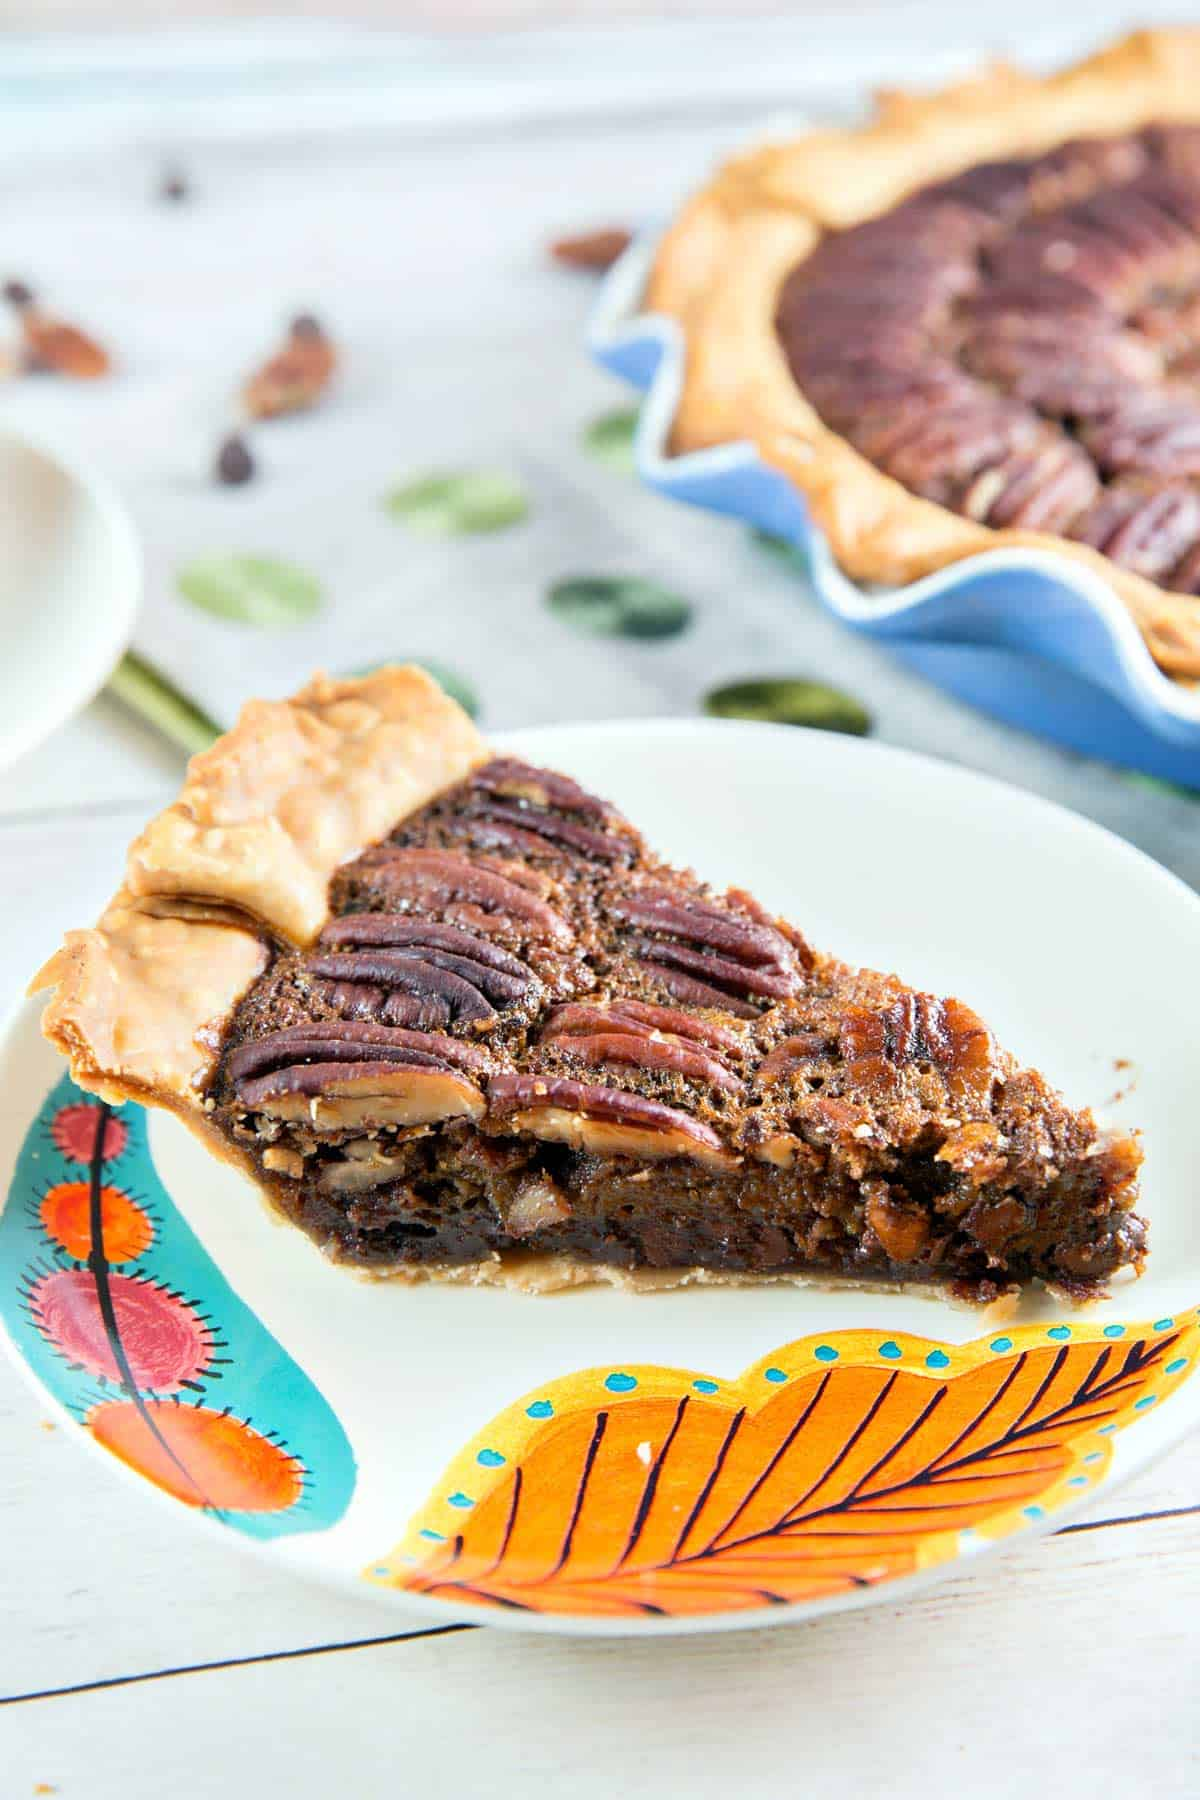 side view of a slice of chocolate bourbon pecan pie on an orange leaf plate